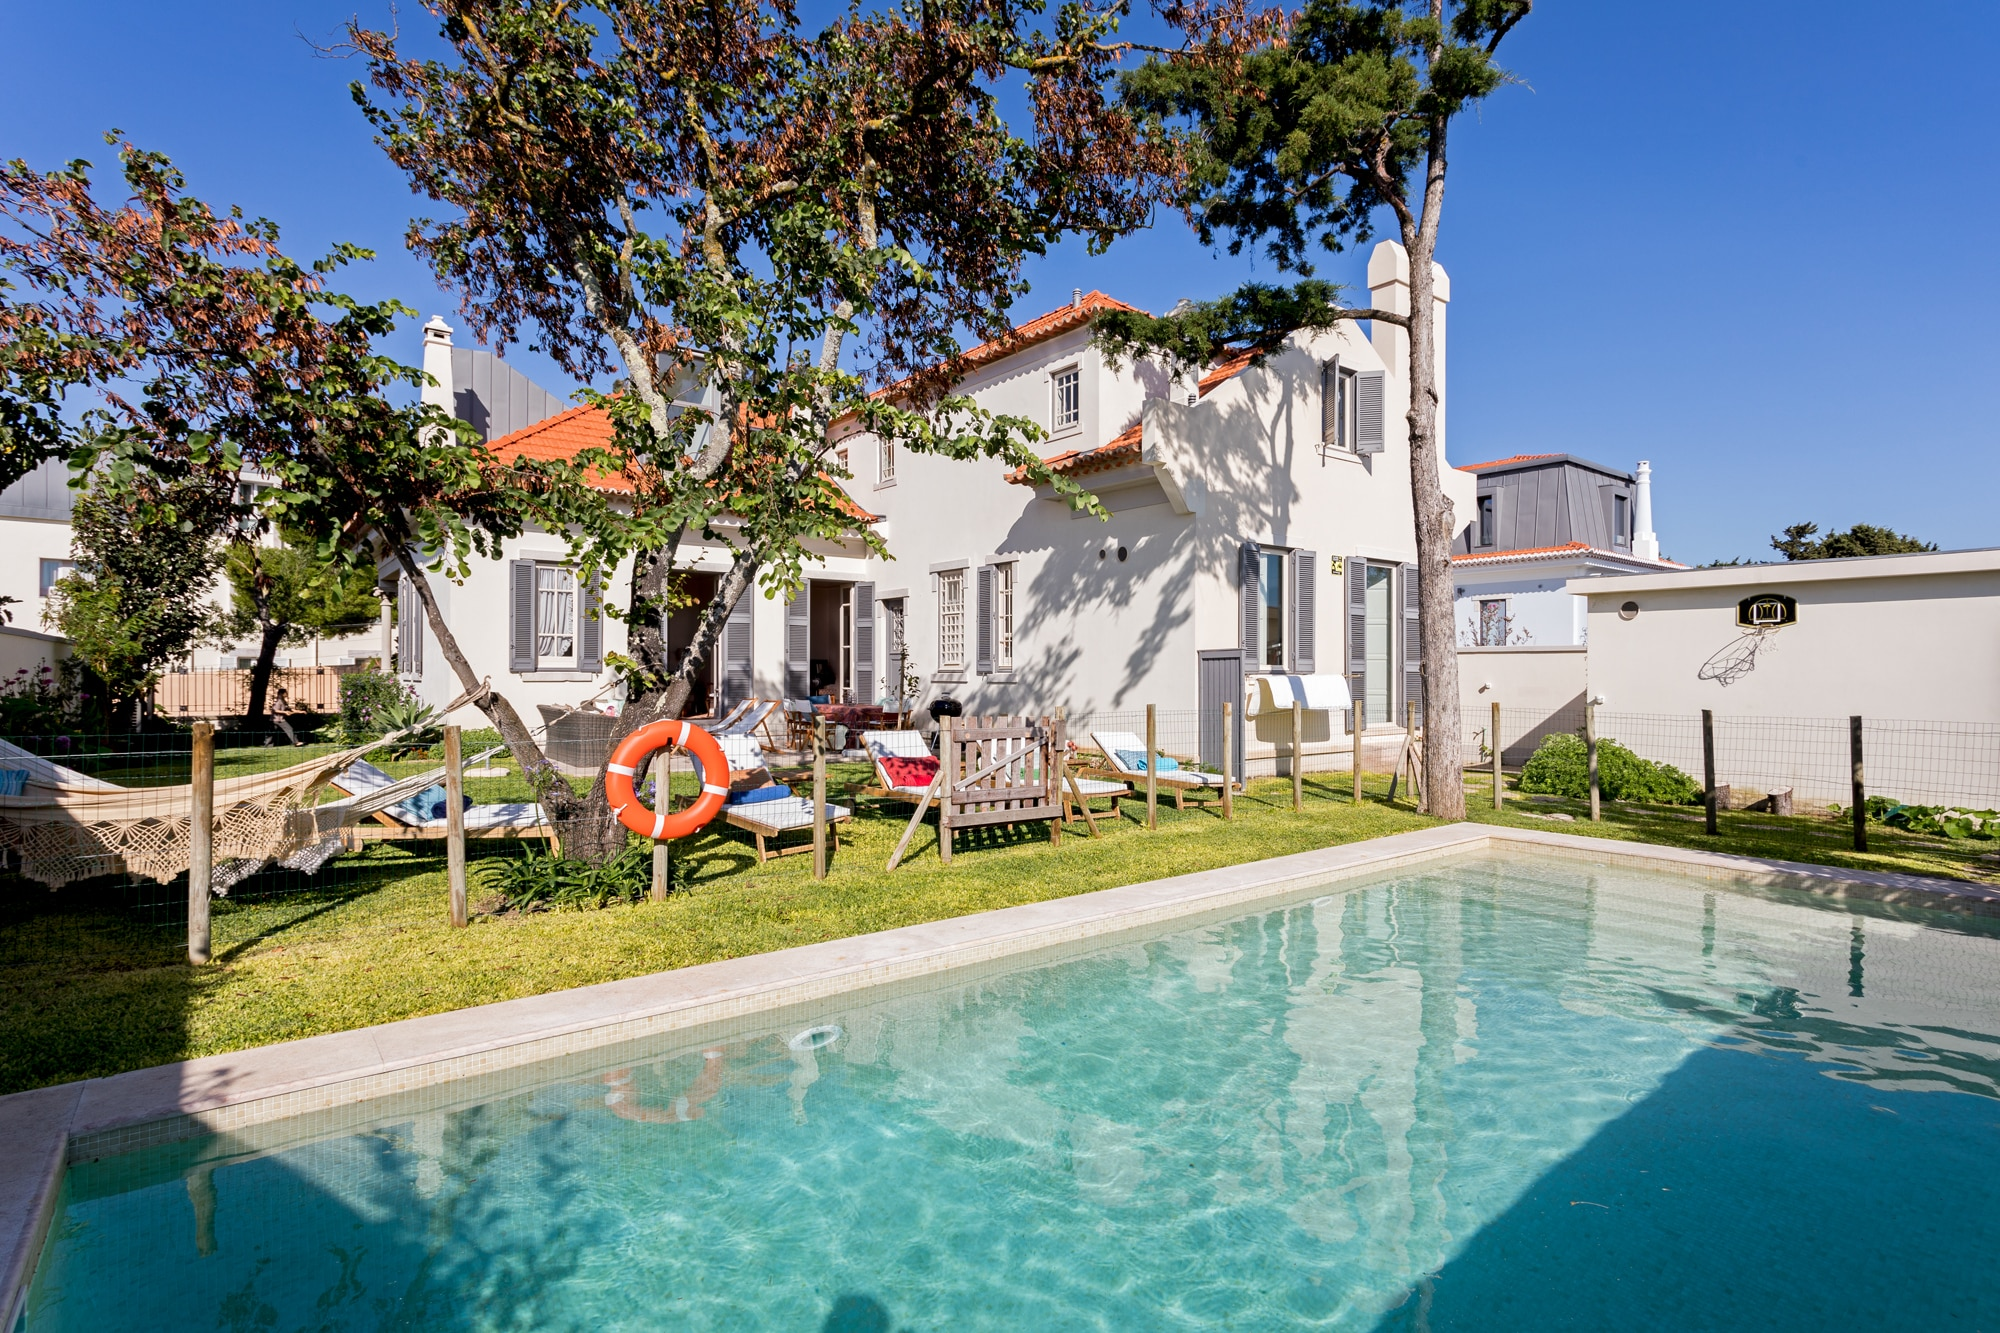 Property Image 2 - Charming family villa in Lisbon center